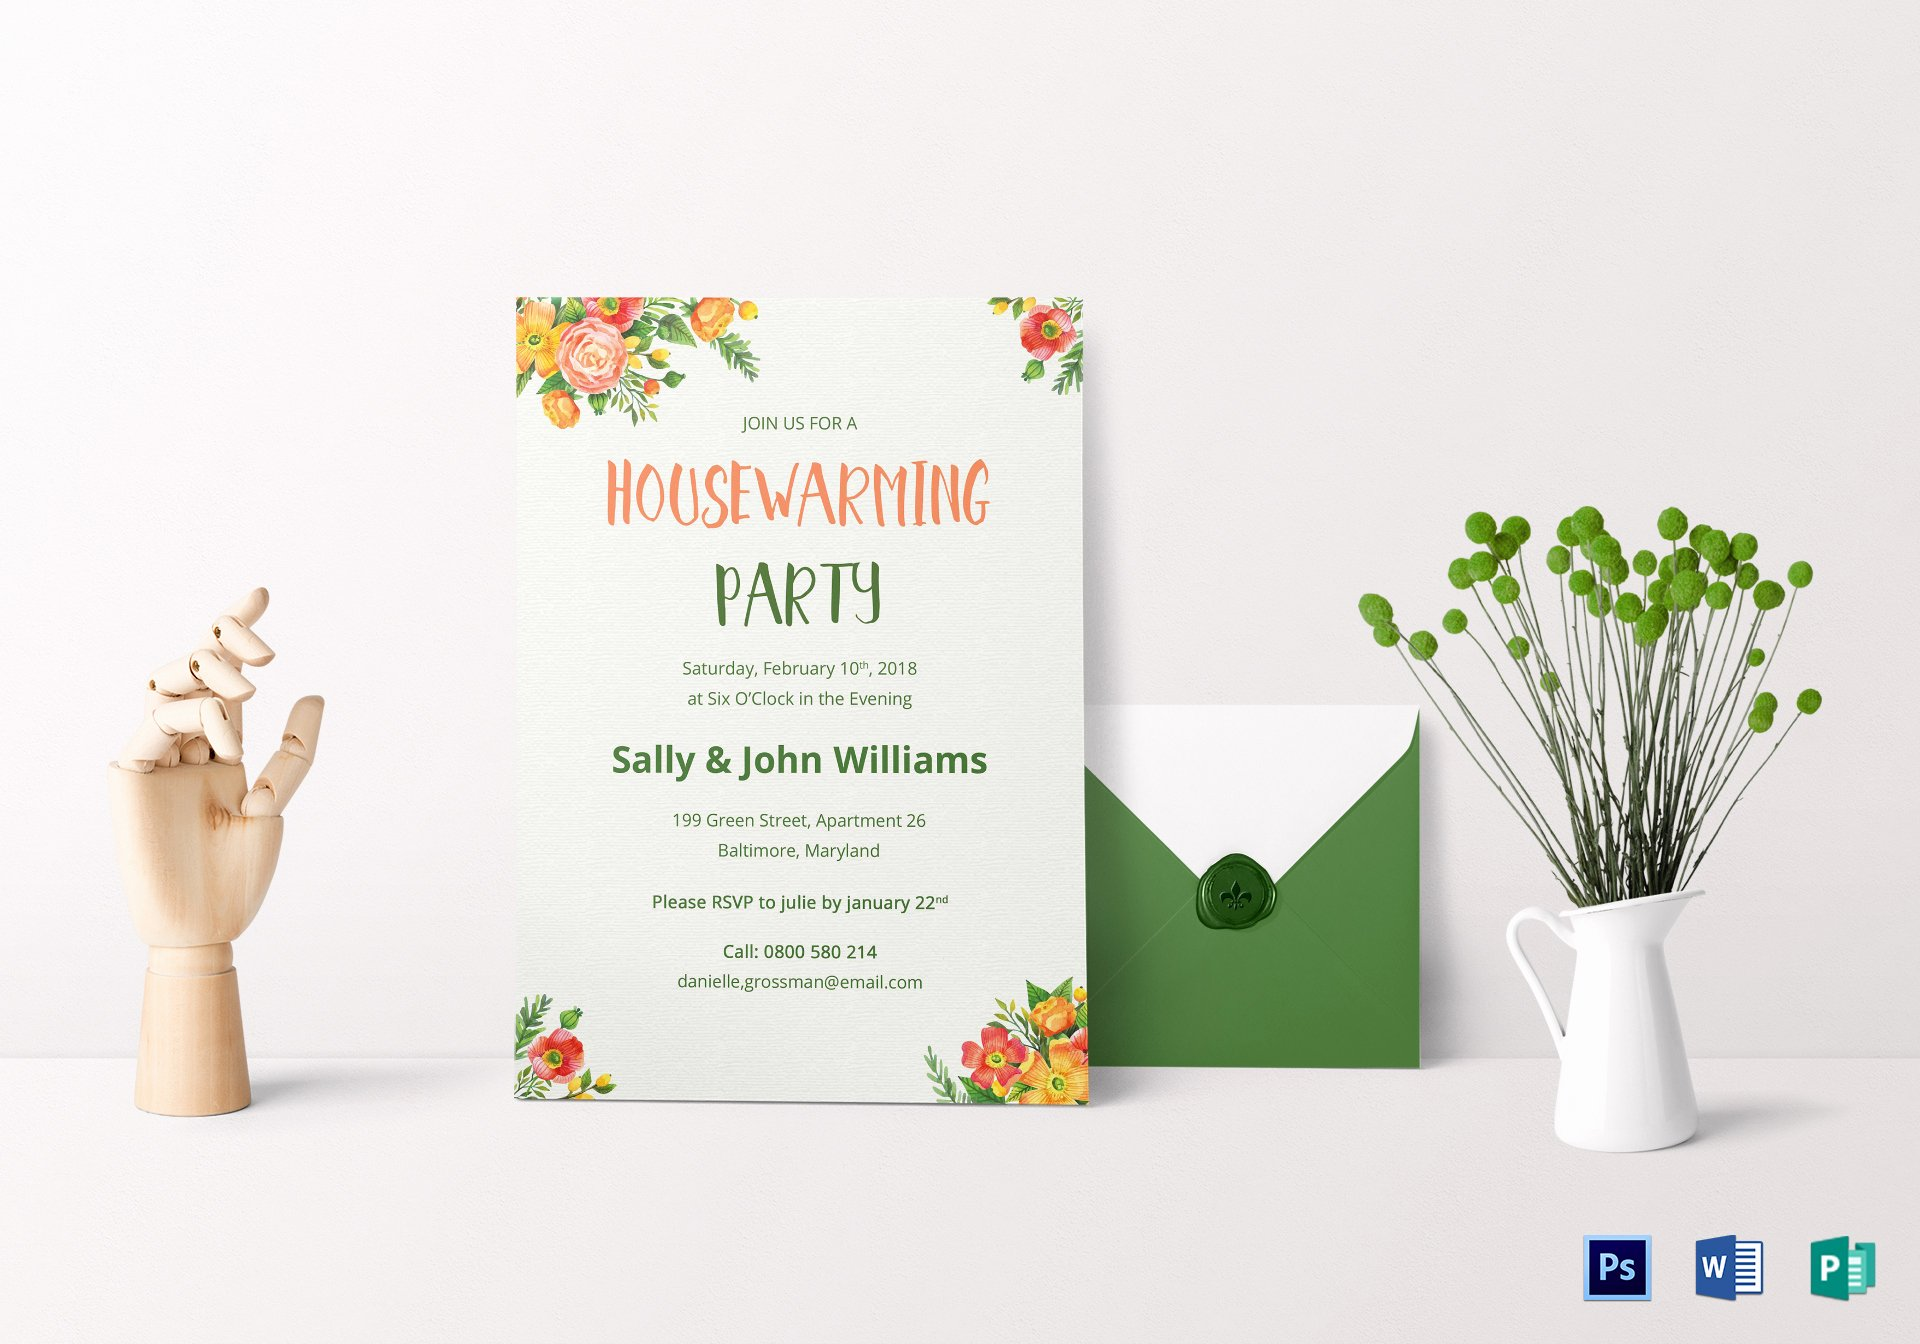 Housewarming Invitation Template Microsoft Word Inspirational Colorful Housewarming Invitation Design Template In Psd Word Publisher